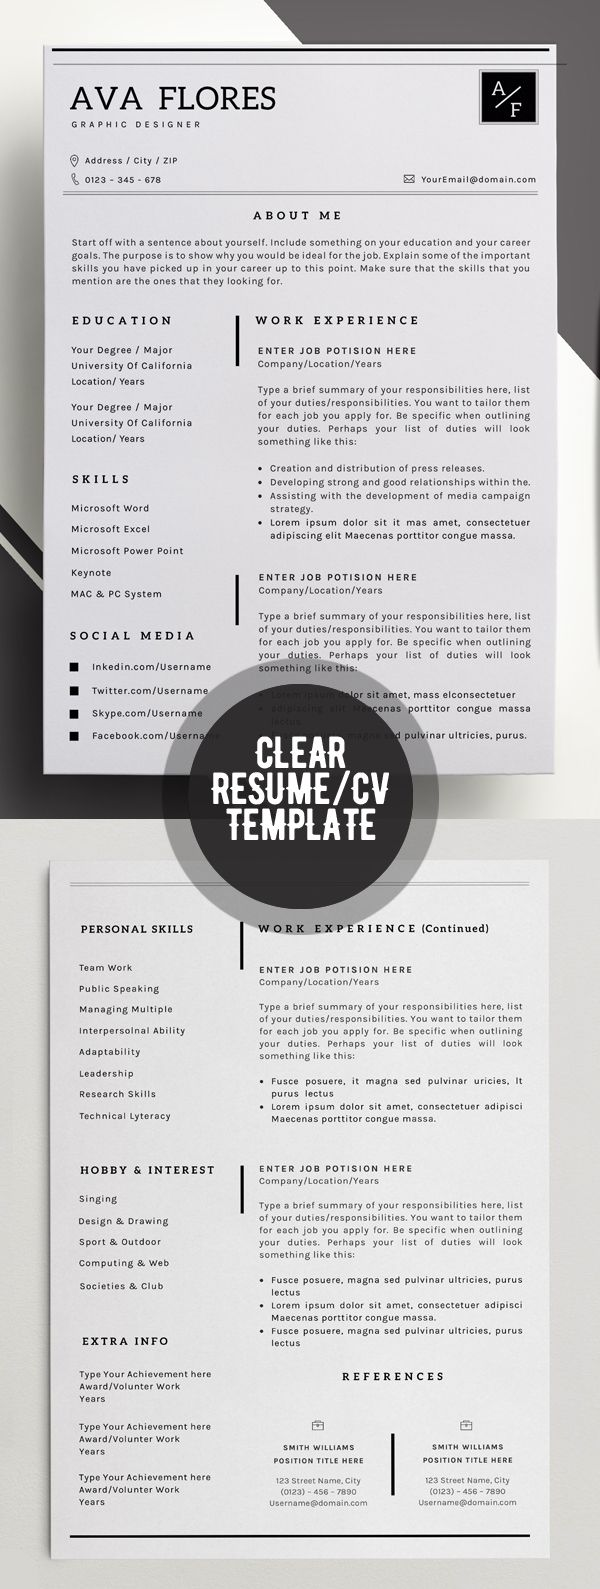 best ideas about resume writing resume resume 17 best ideas about resume writing resume resume help and resume writing tips